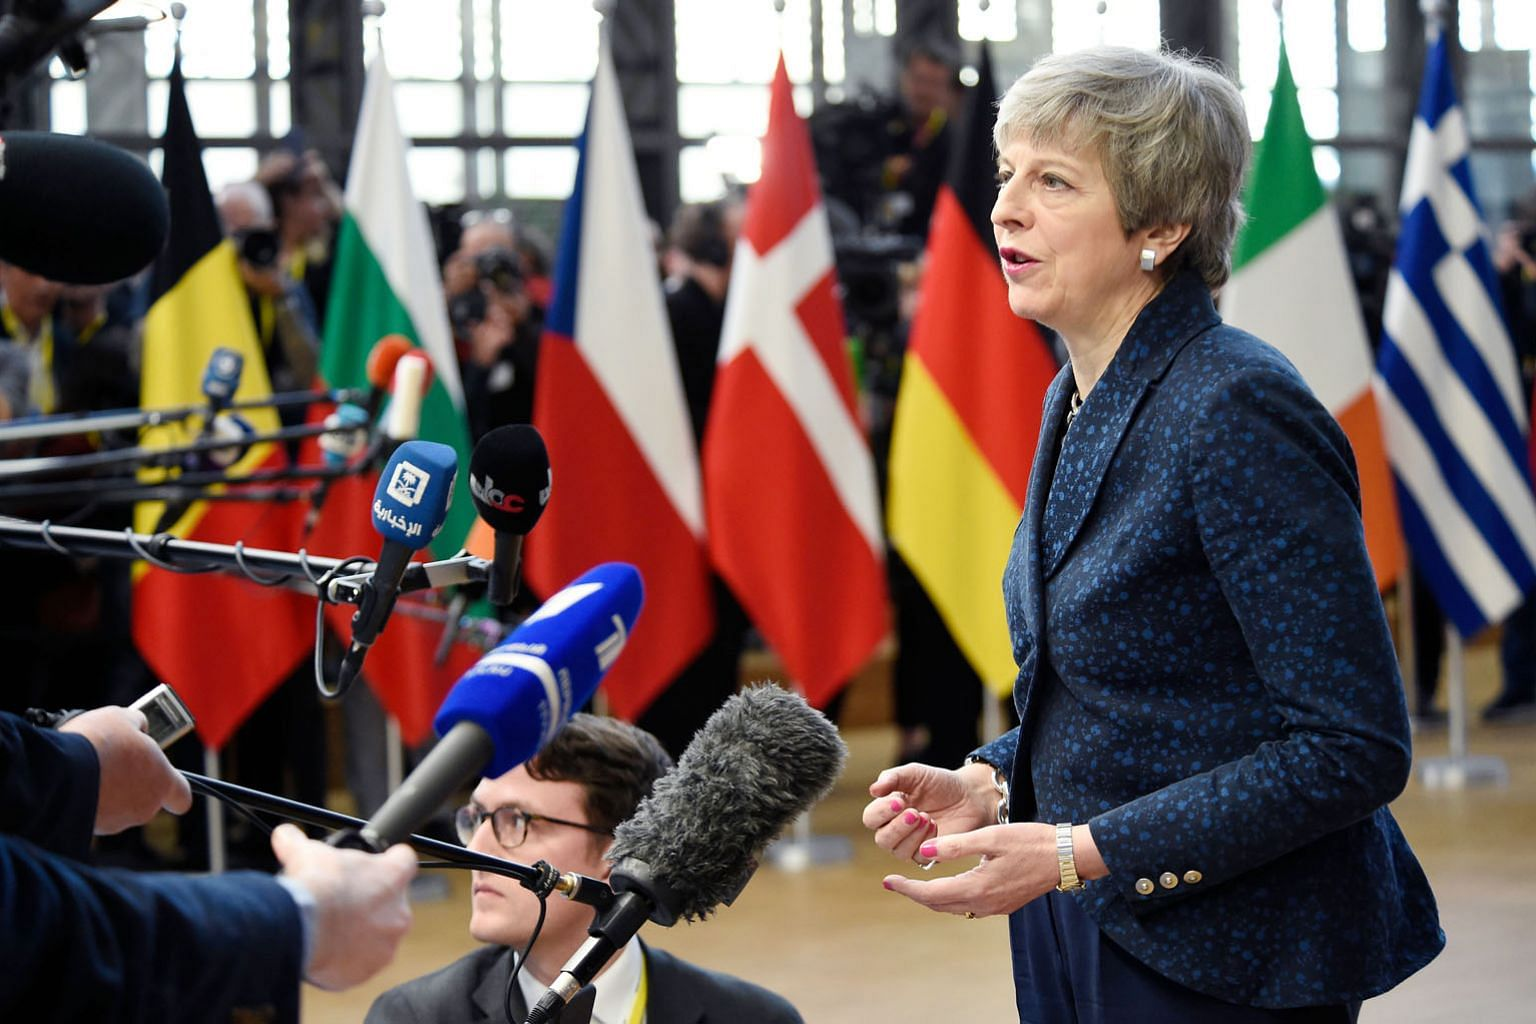 British Prime Minister Theresa May speaking to the press as she arrived yesterday in Brussels on the first day of an EU summit. Mrs May made a last-ditch plea to the bloc's 27 other leaders to hand her a Brexit delay until June 30, a request that she